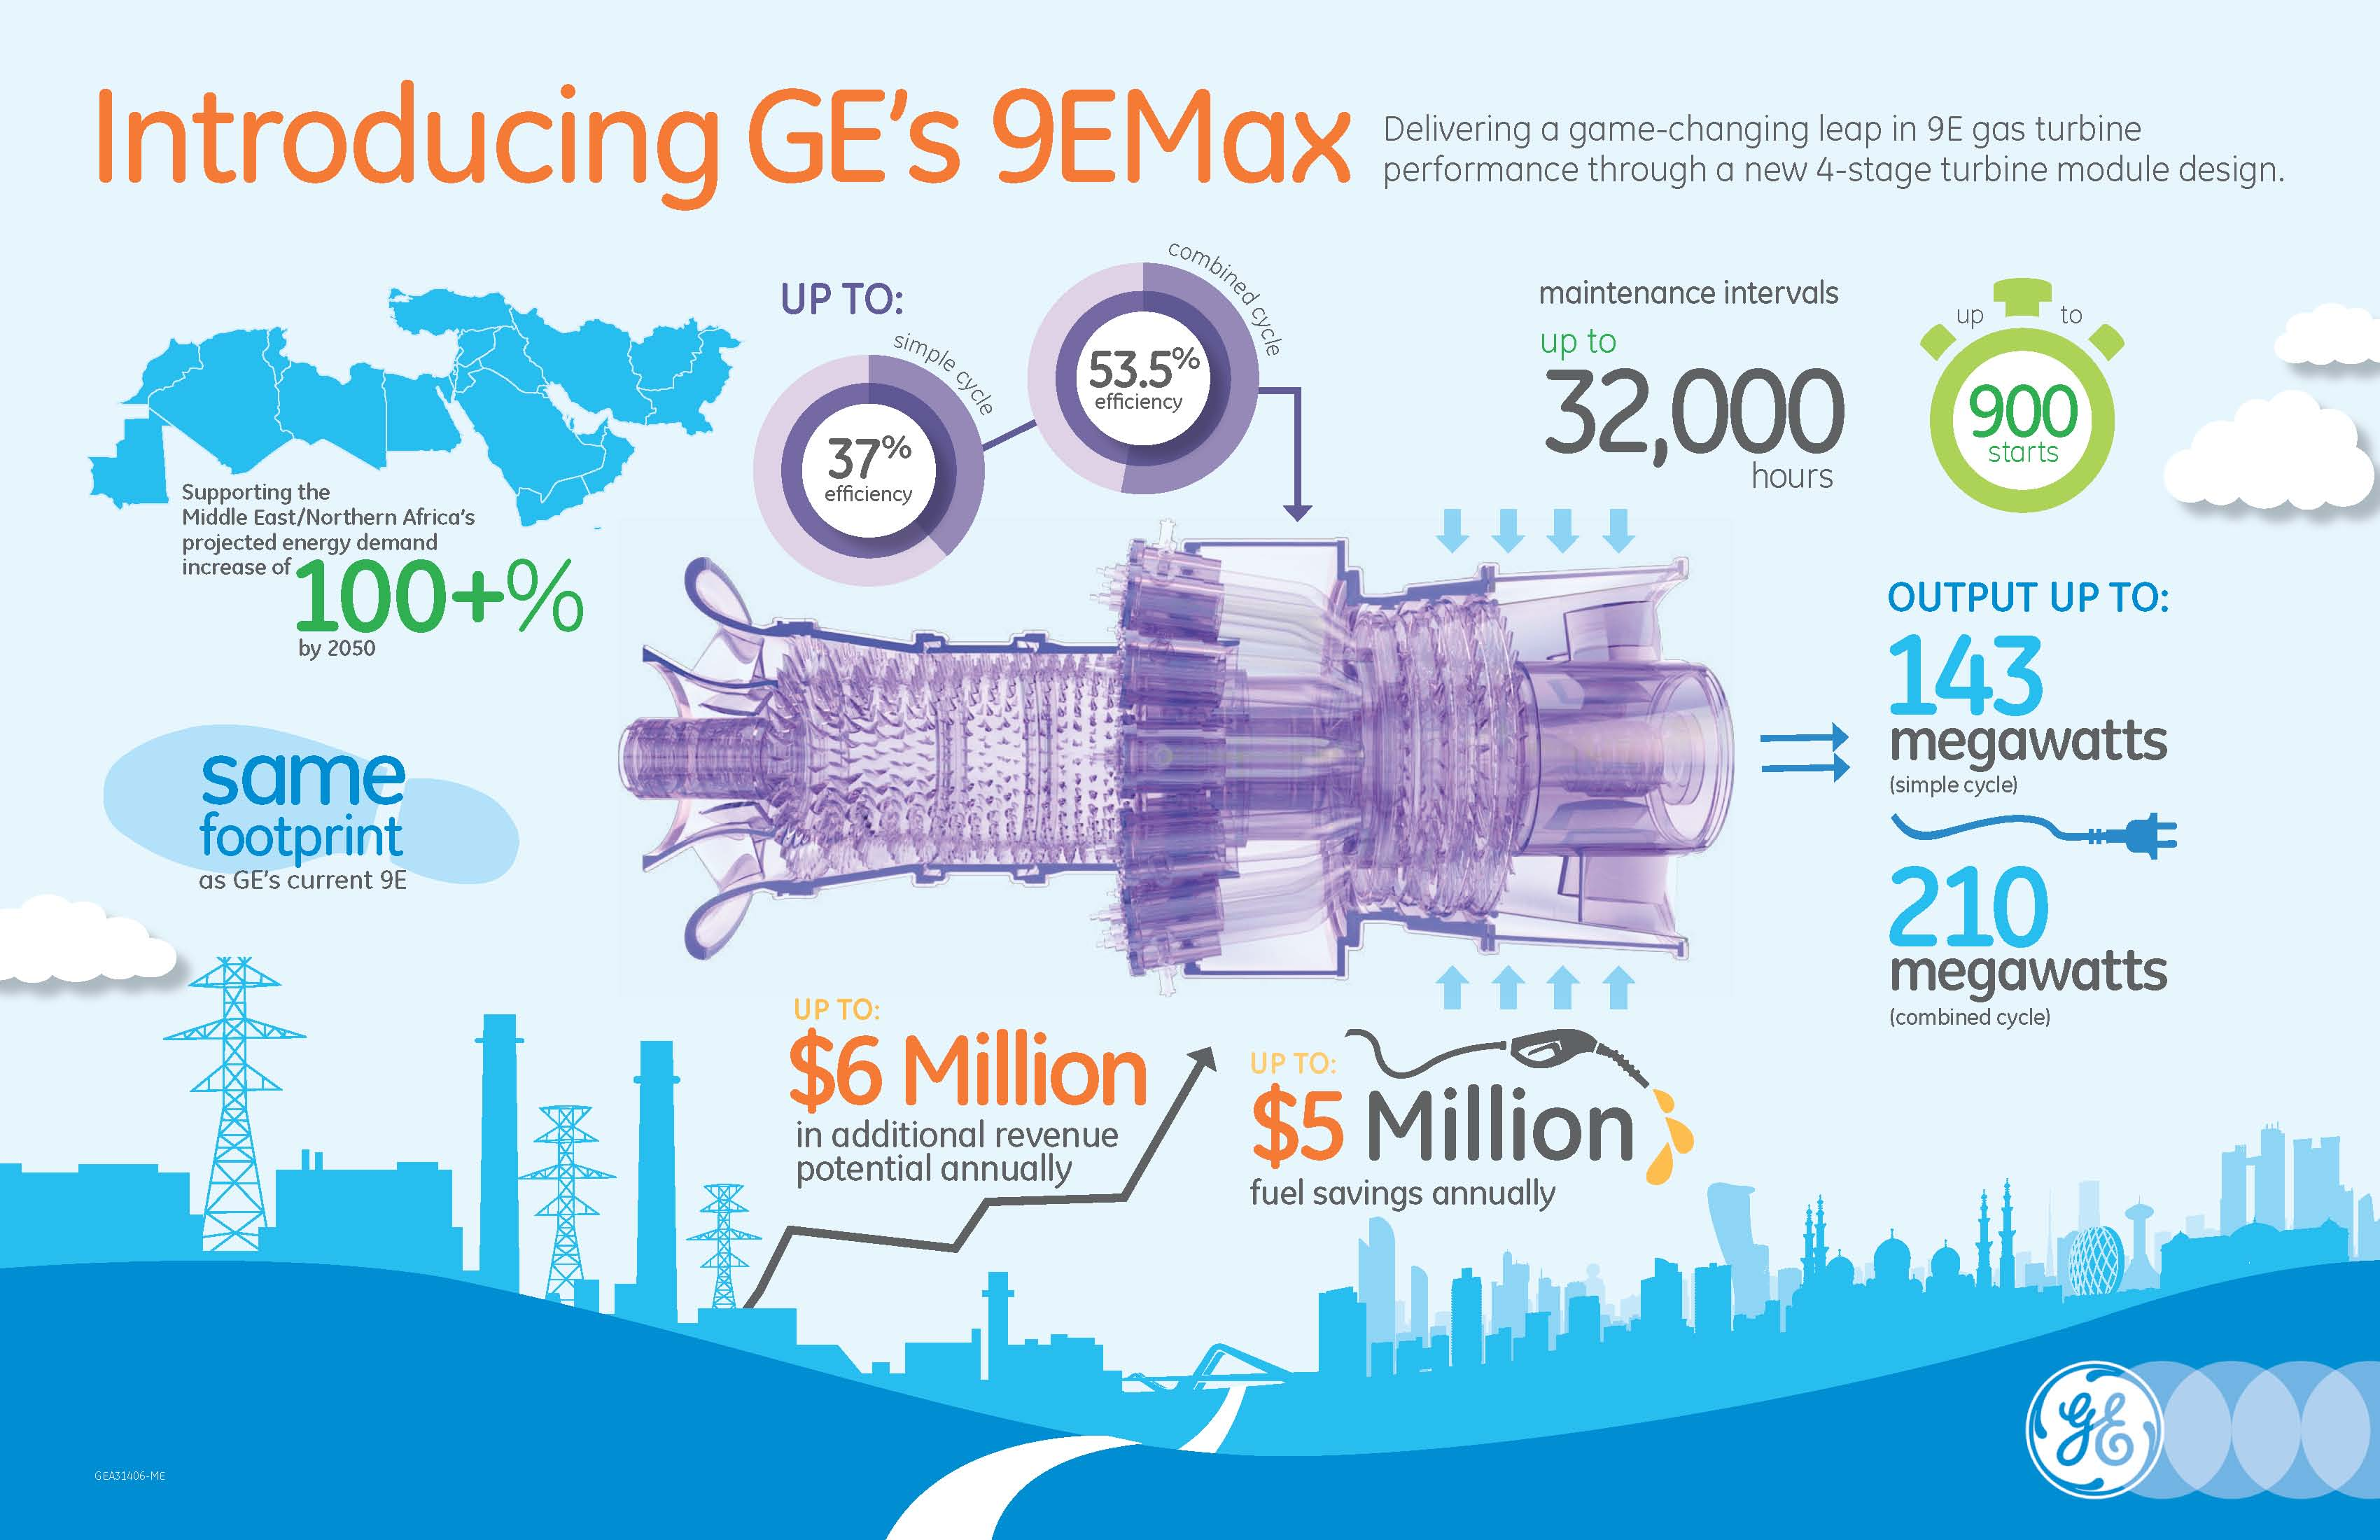 GE's 9EMax Gas Turbine Solution Achieves First Fire Operation | GE